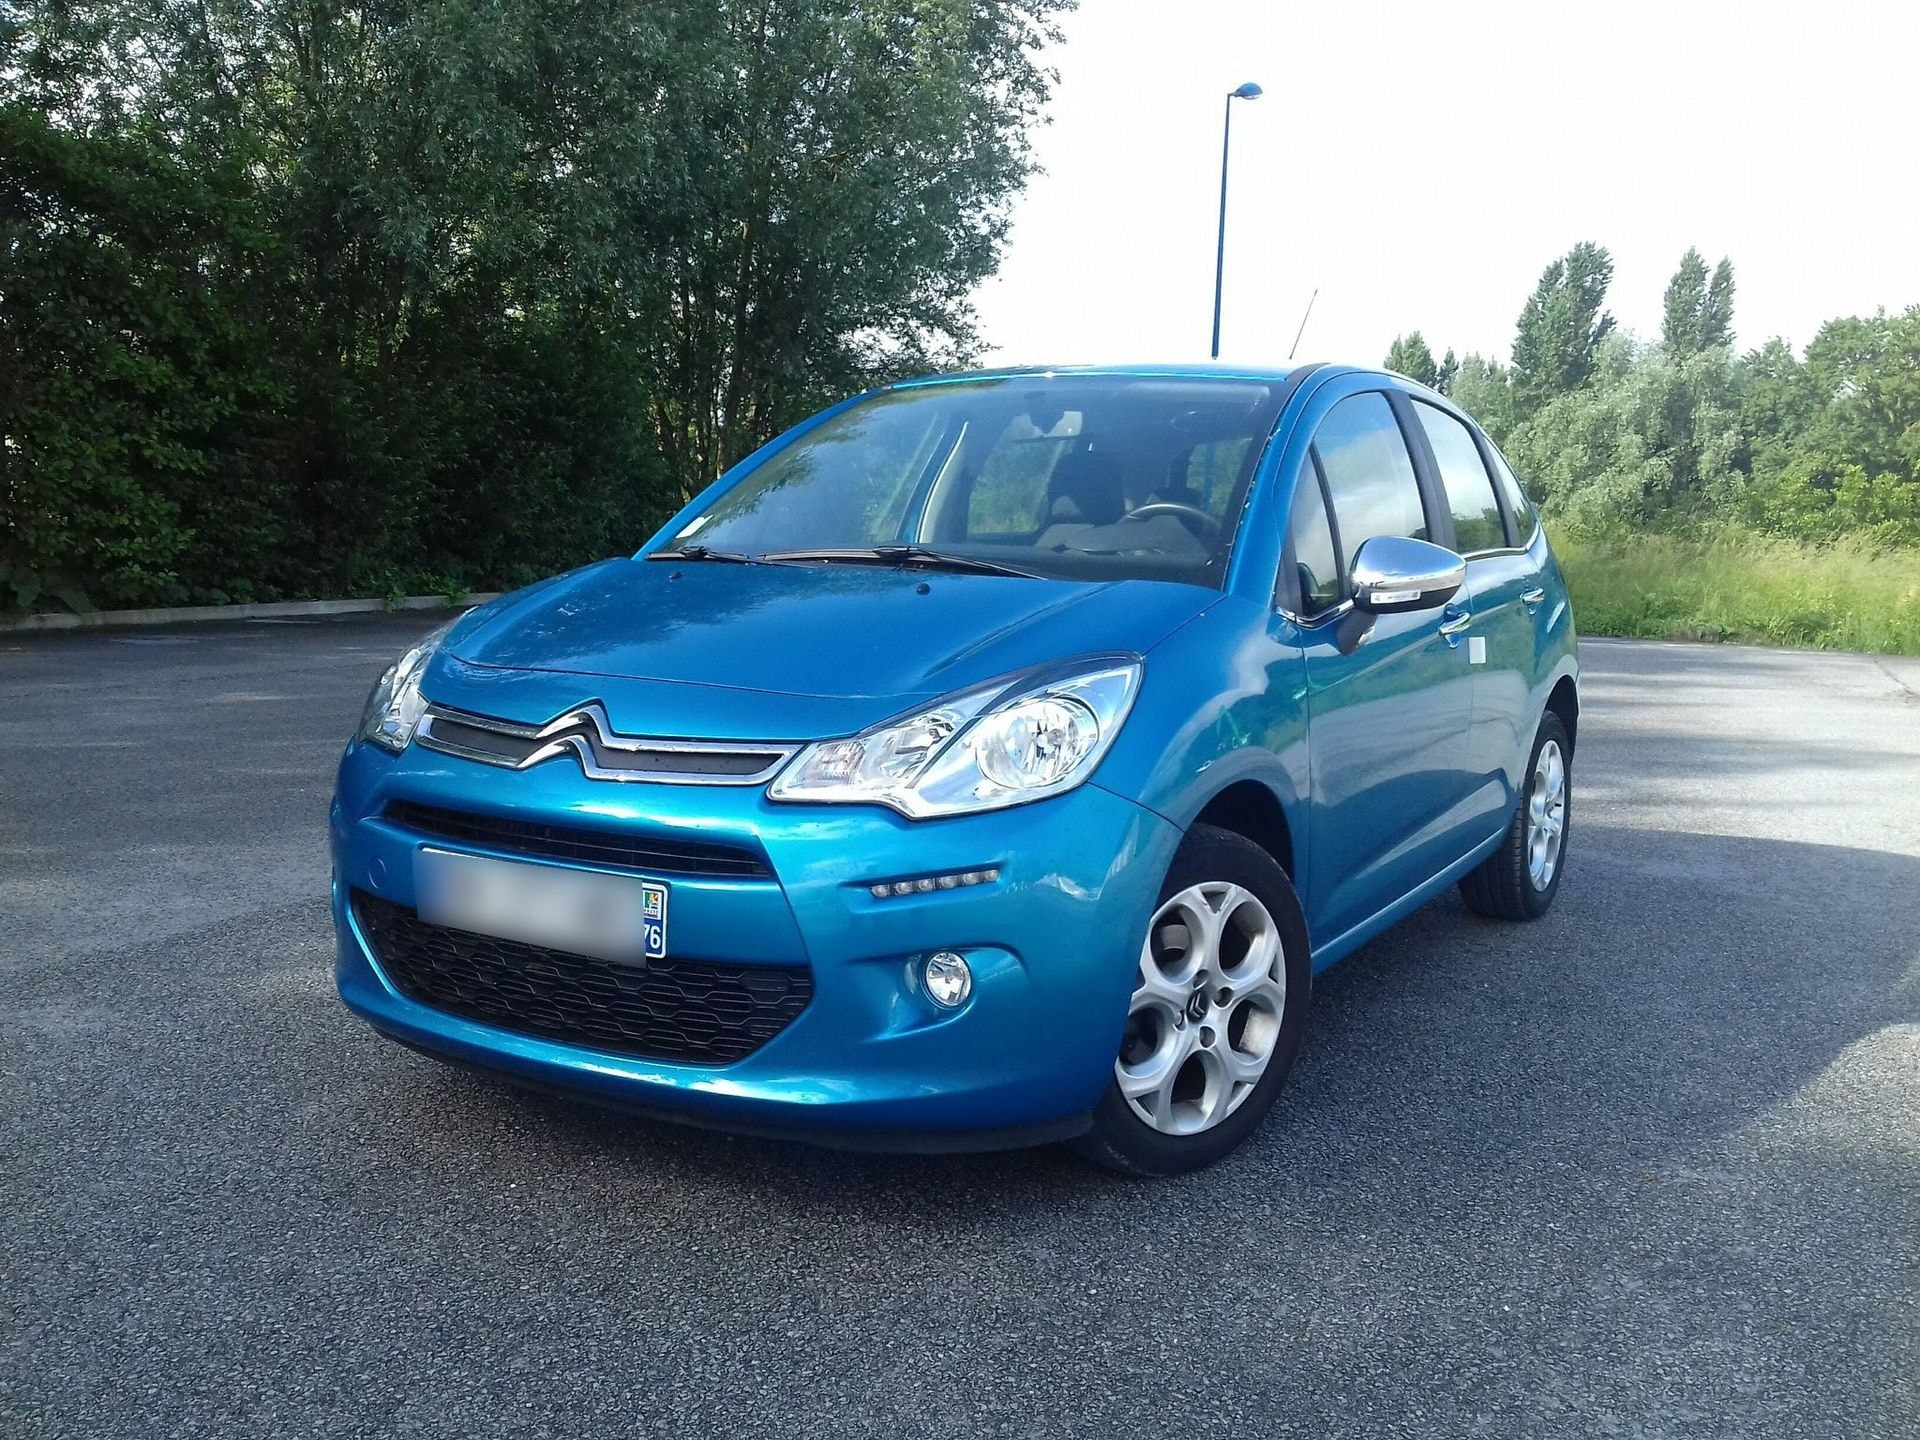 CITROEN C3 GENERATION-II 1.6 BLUEHDI 75 FEEL EDITION - Carverntura